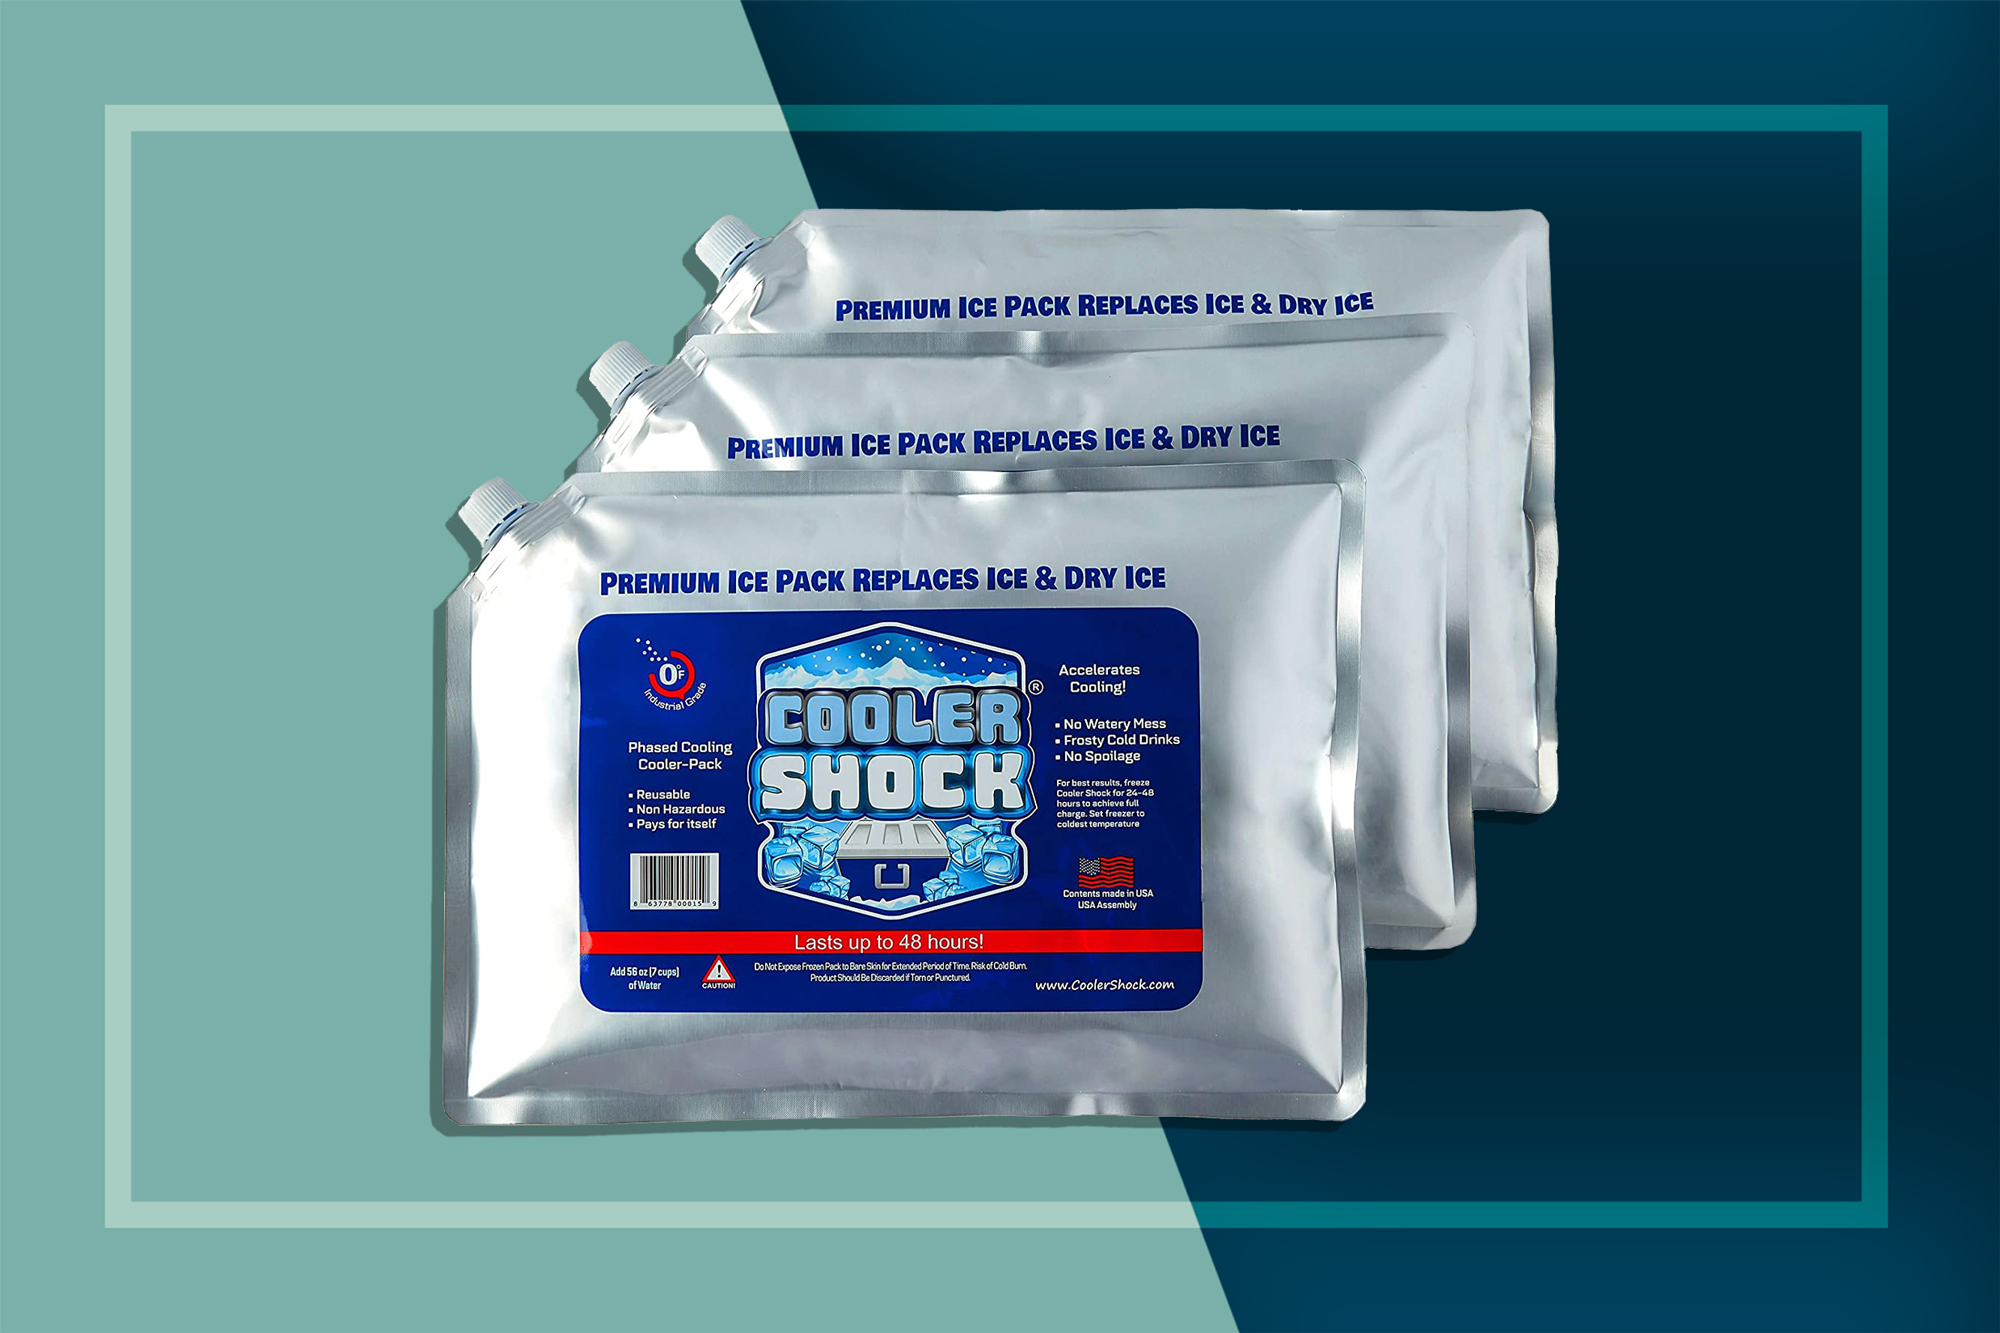 Cooler Shock Ice Packs